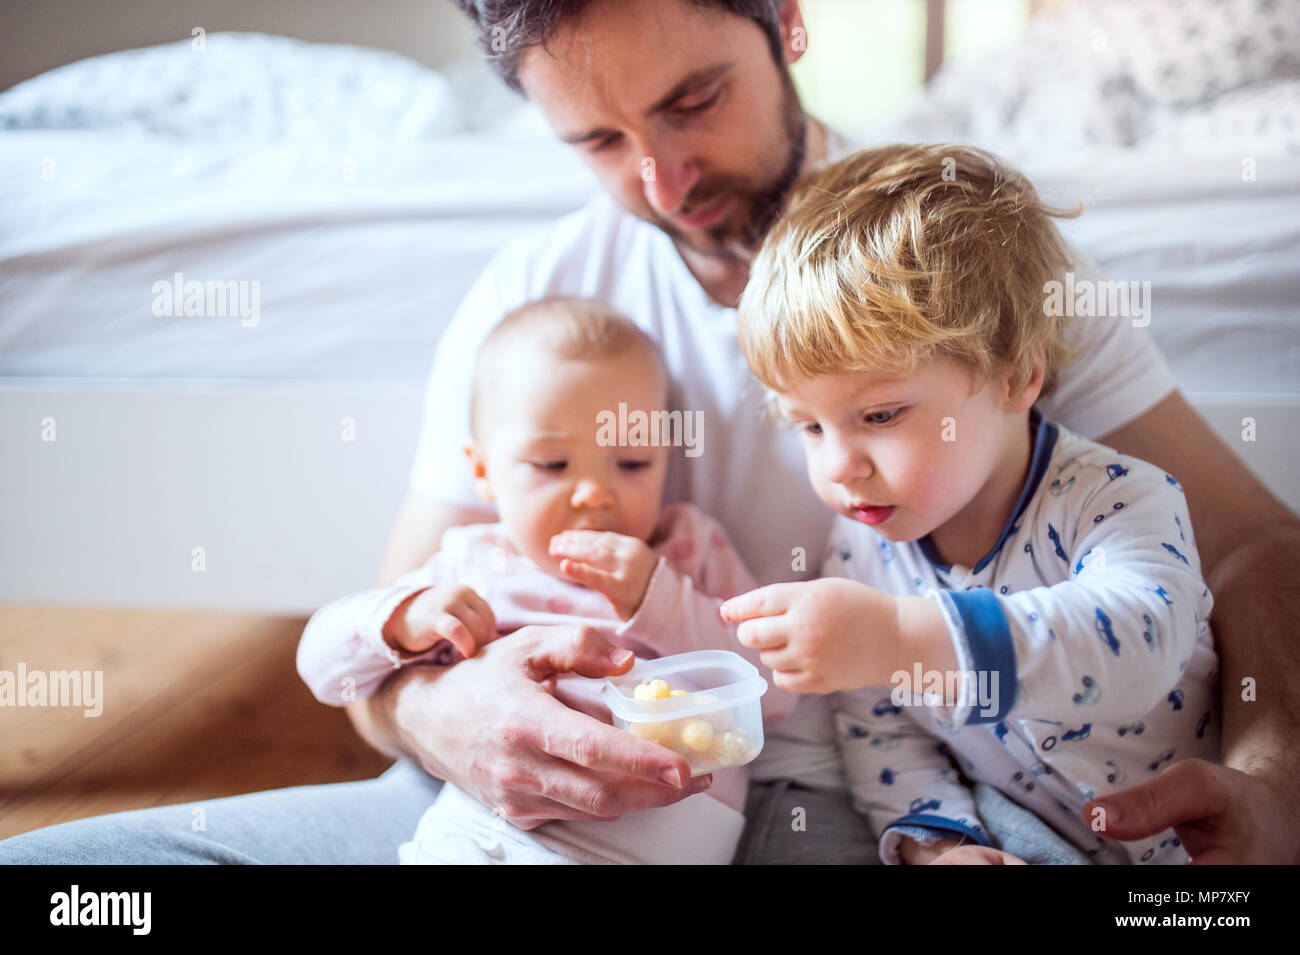 Father with toddler children eating finger food in bedroom at home. - Stock Image